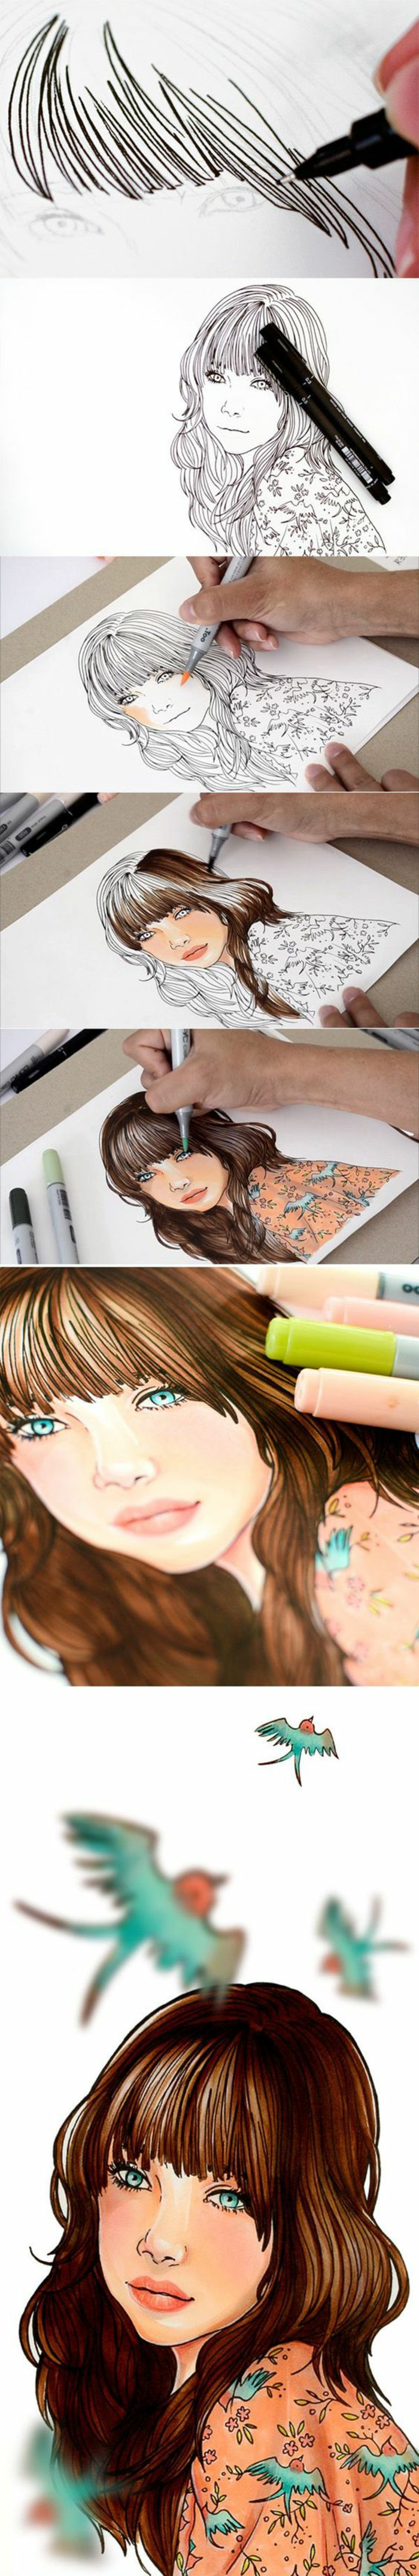 step by step tutorial, how to draw a girl, long brown hair with bangs, floral shirt with birds